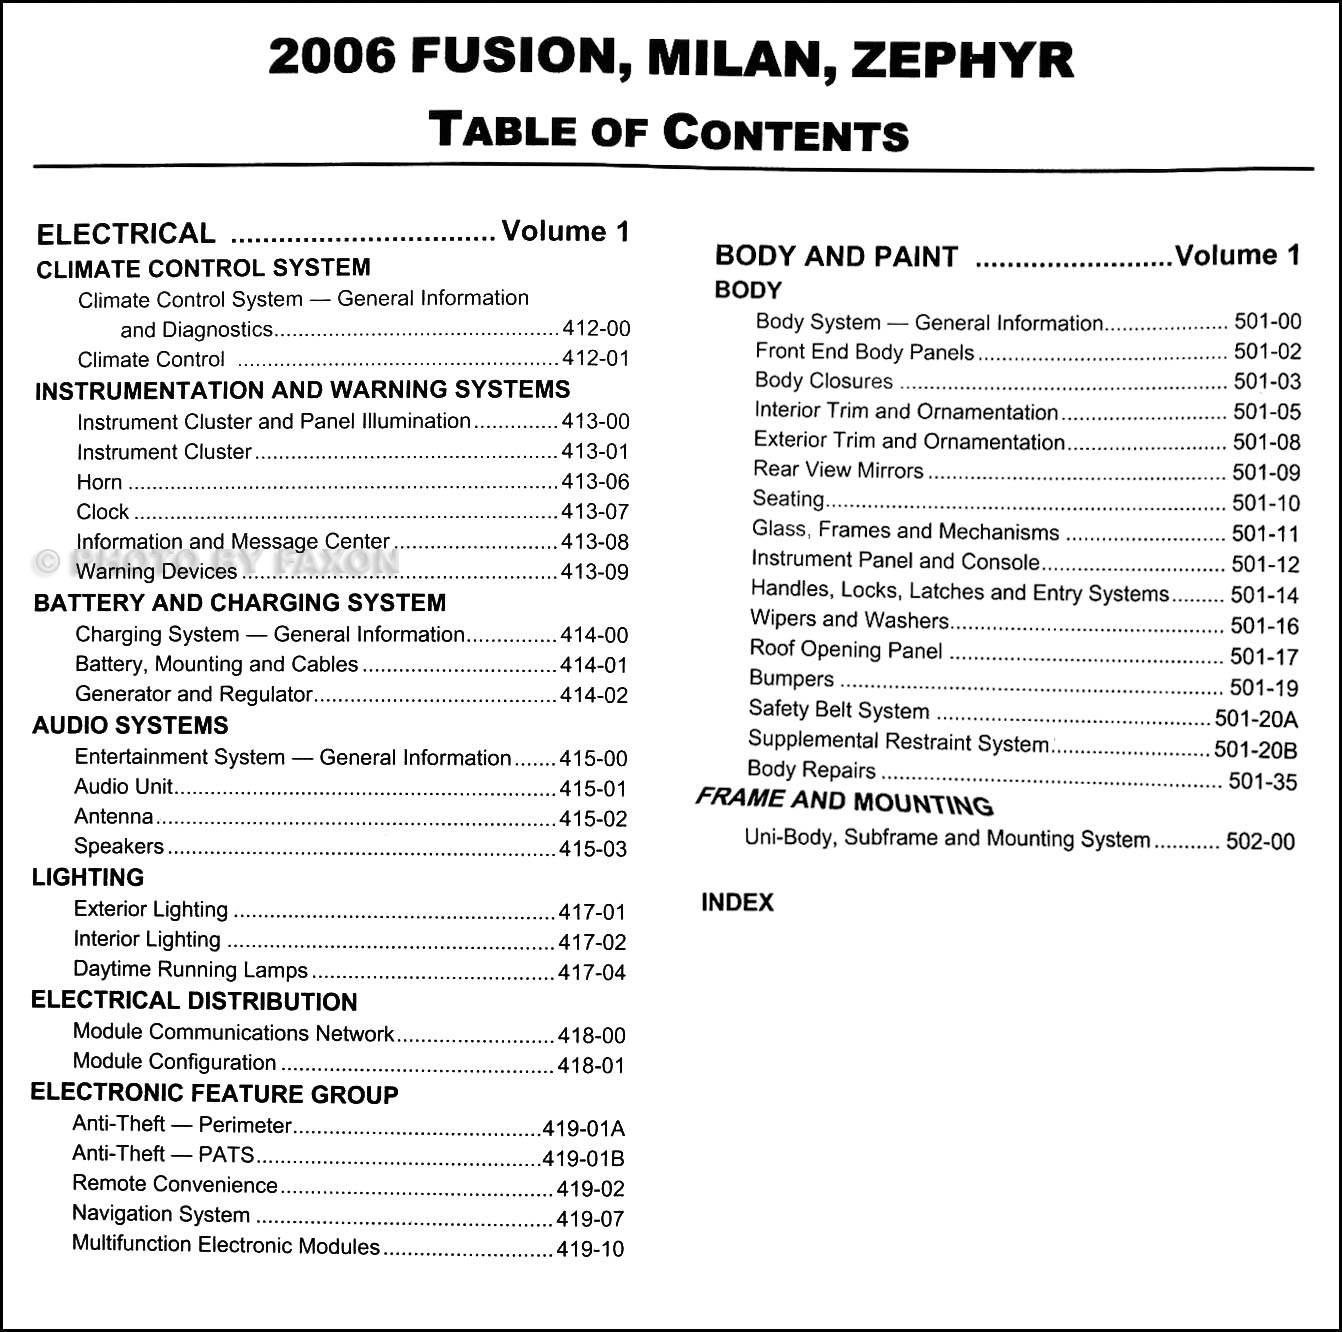 lincoln zephyr wiring diagram example electrical wiring diagram u2022 rh cranejapan co Mercury Outboard Wiring Diagram 1997 Mercury Outboard Wiring Diagram